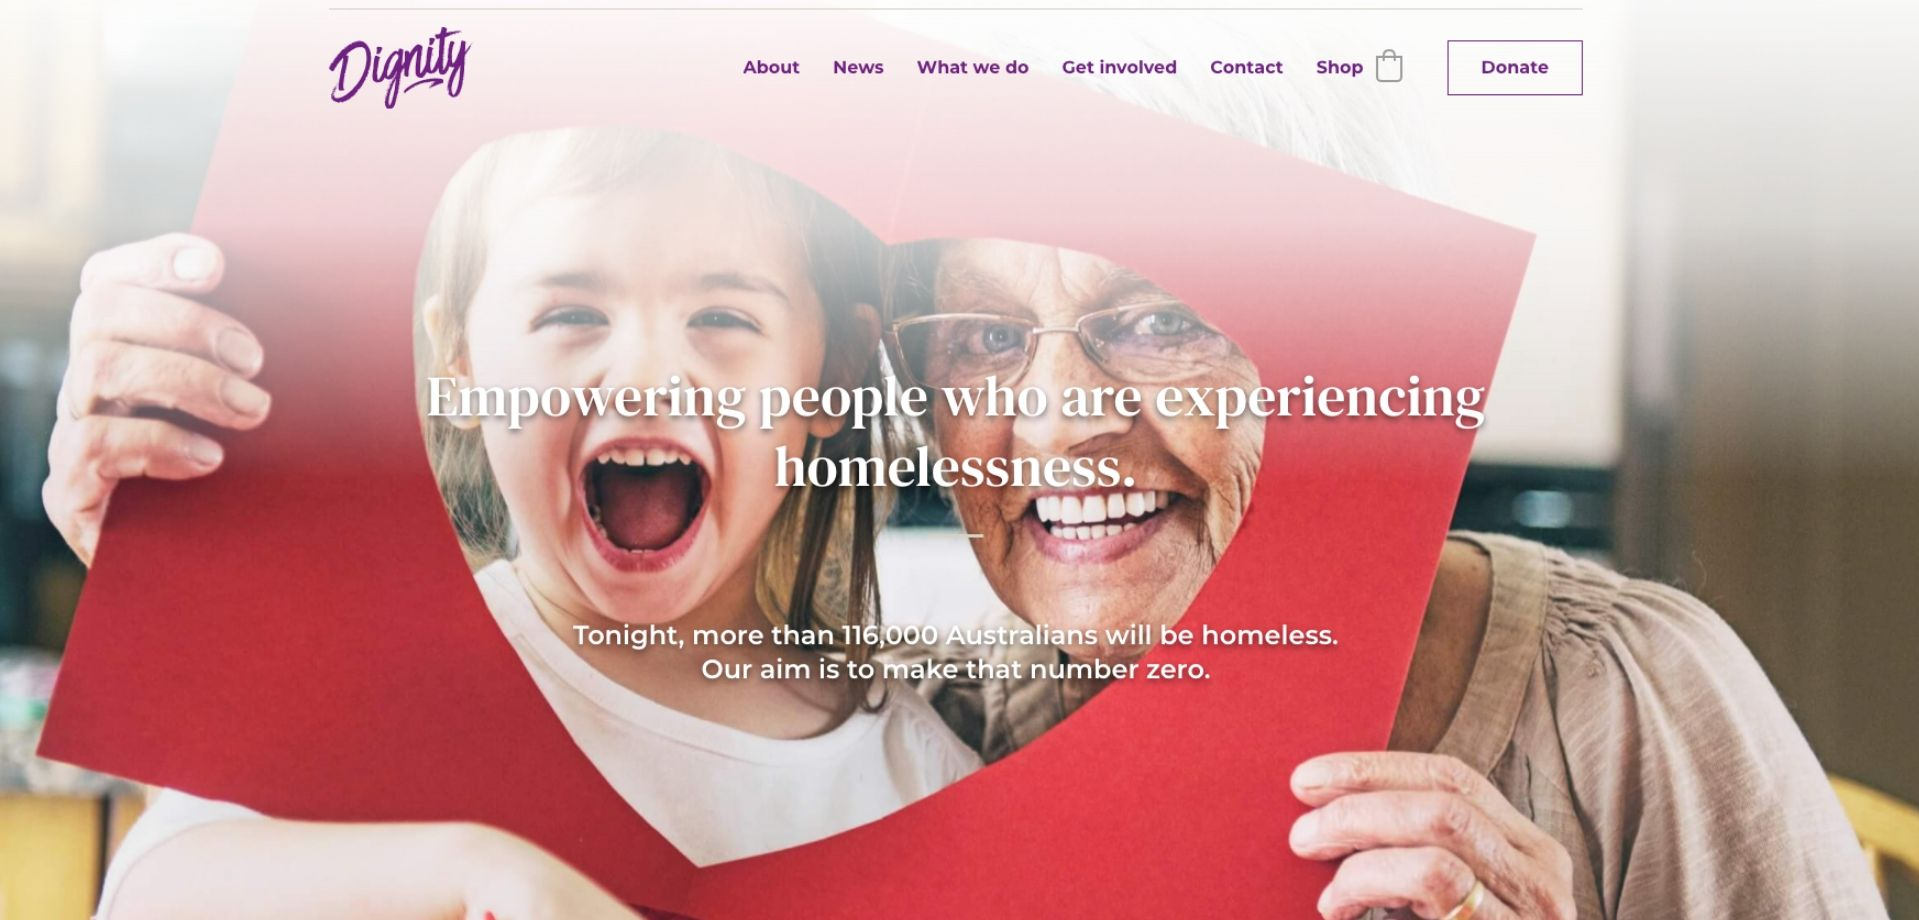 dignity website project